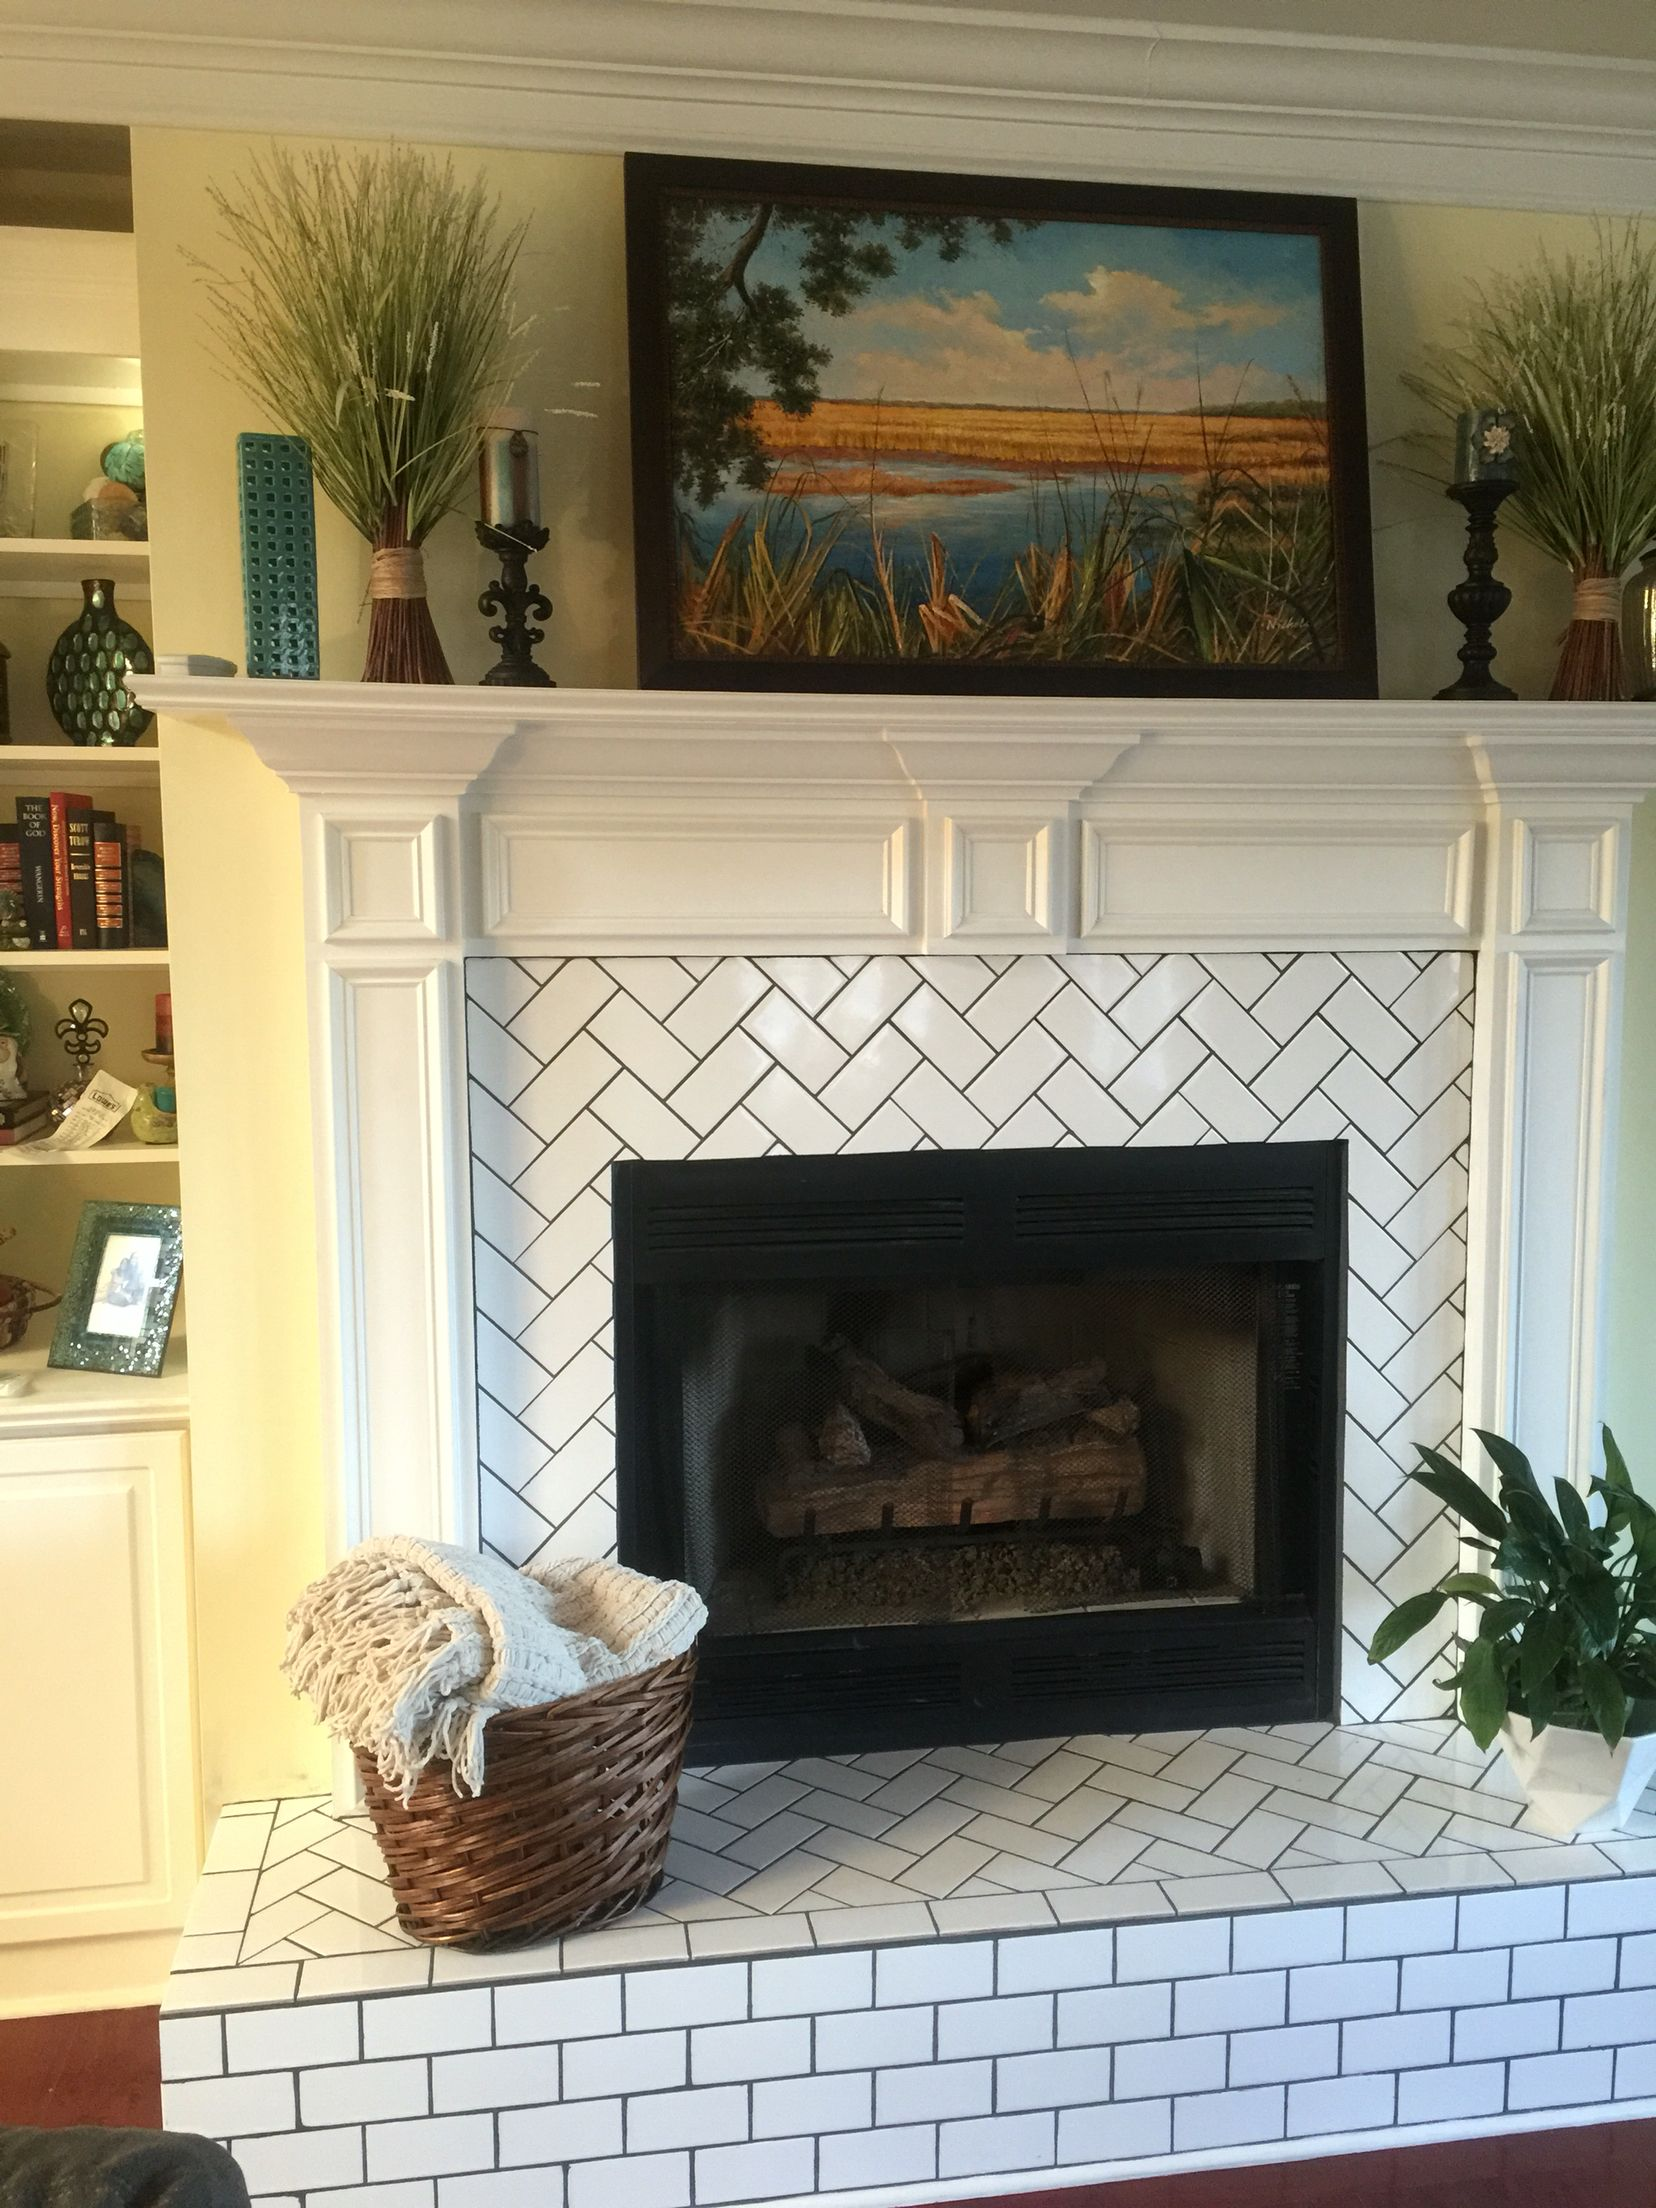 Herringbone pattern subway tile fireplace hearth and surround update.                                                                                                                                                                                 More